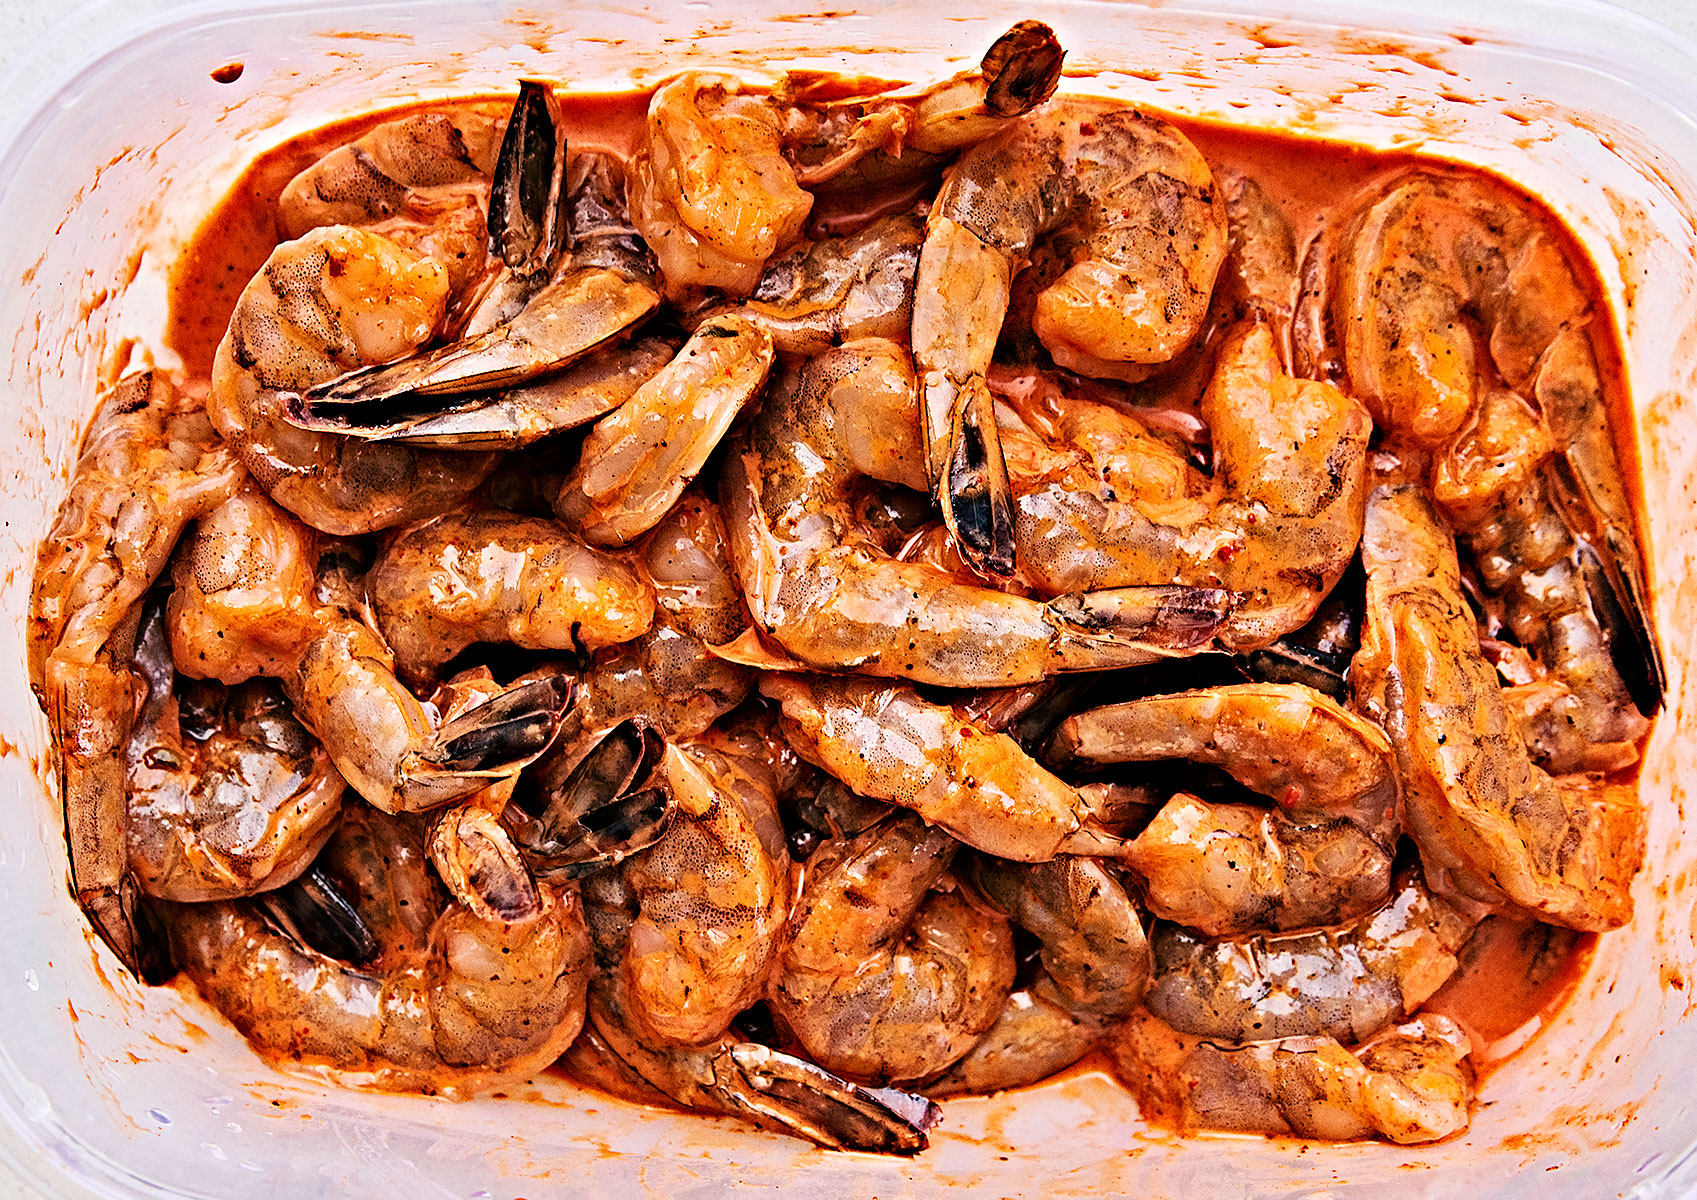 Close-up of marinated raw shrimp with the tails on.